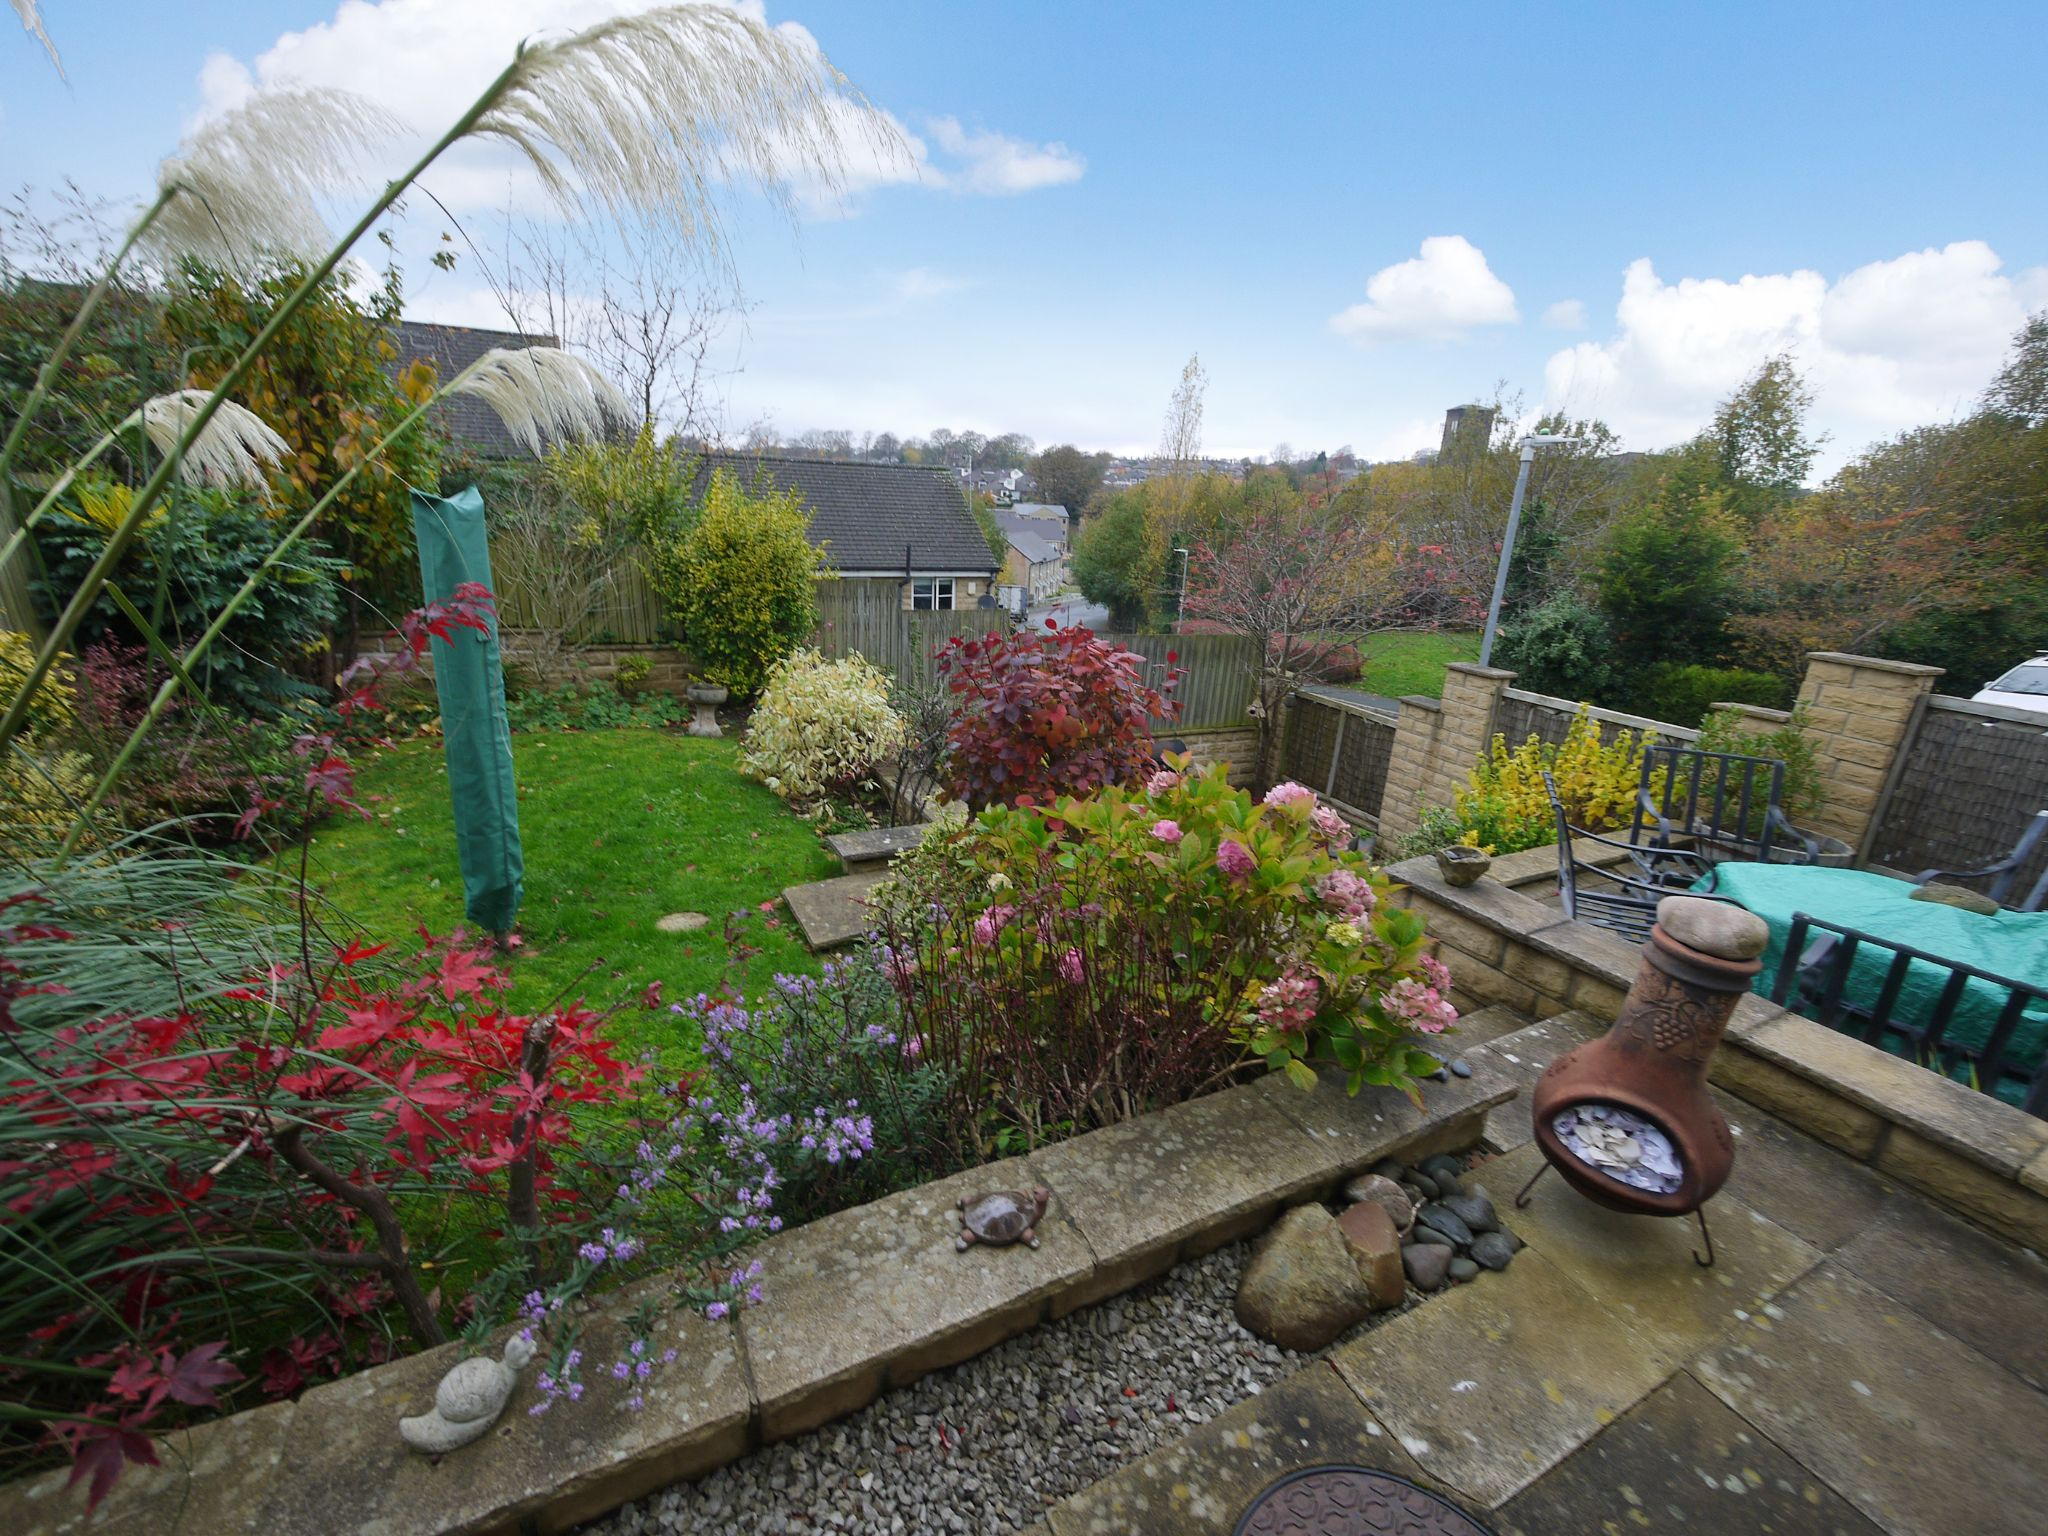 4 bedroom detached house SSTC in Brighouse - Rear gdn2.